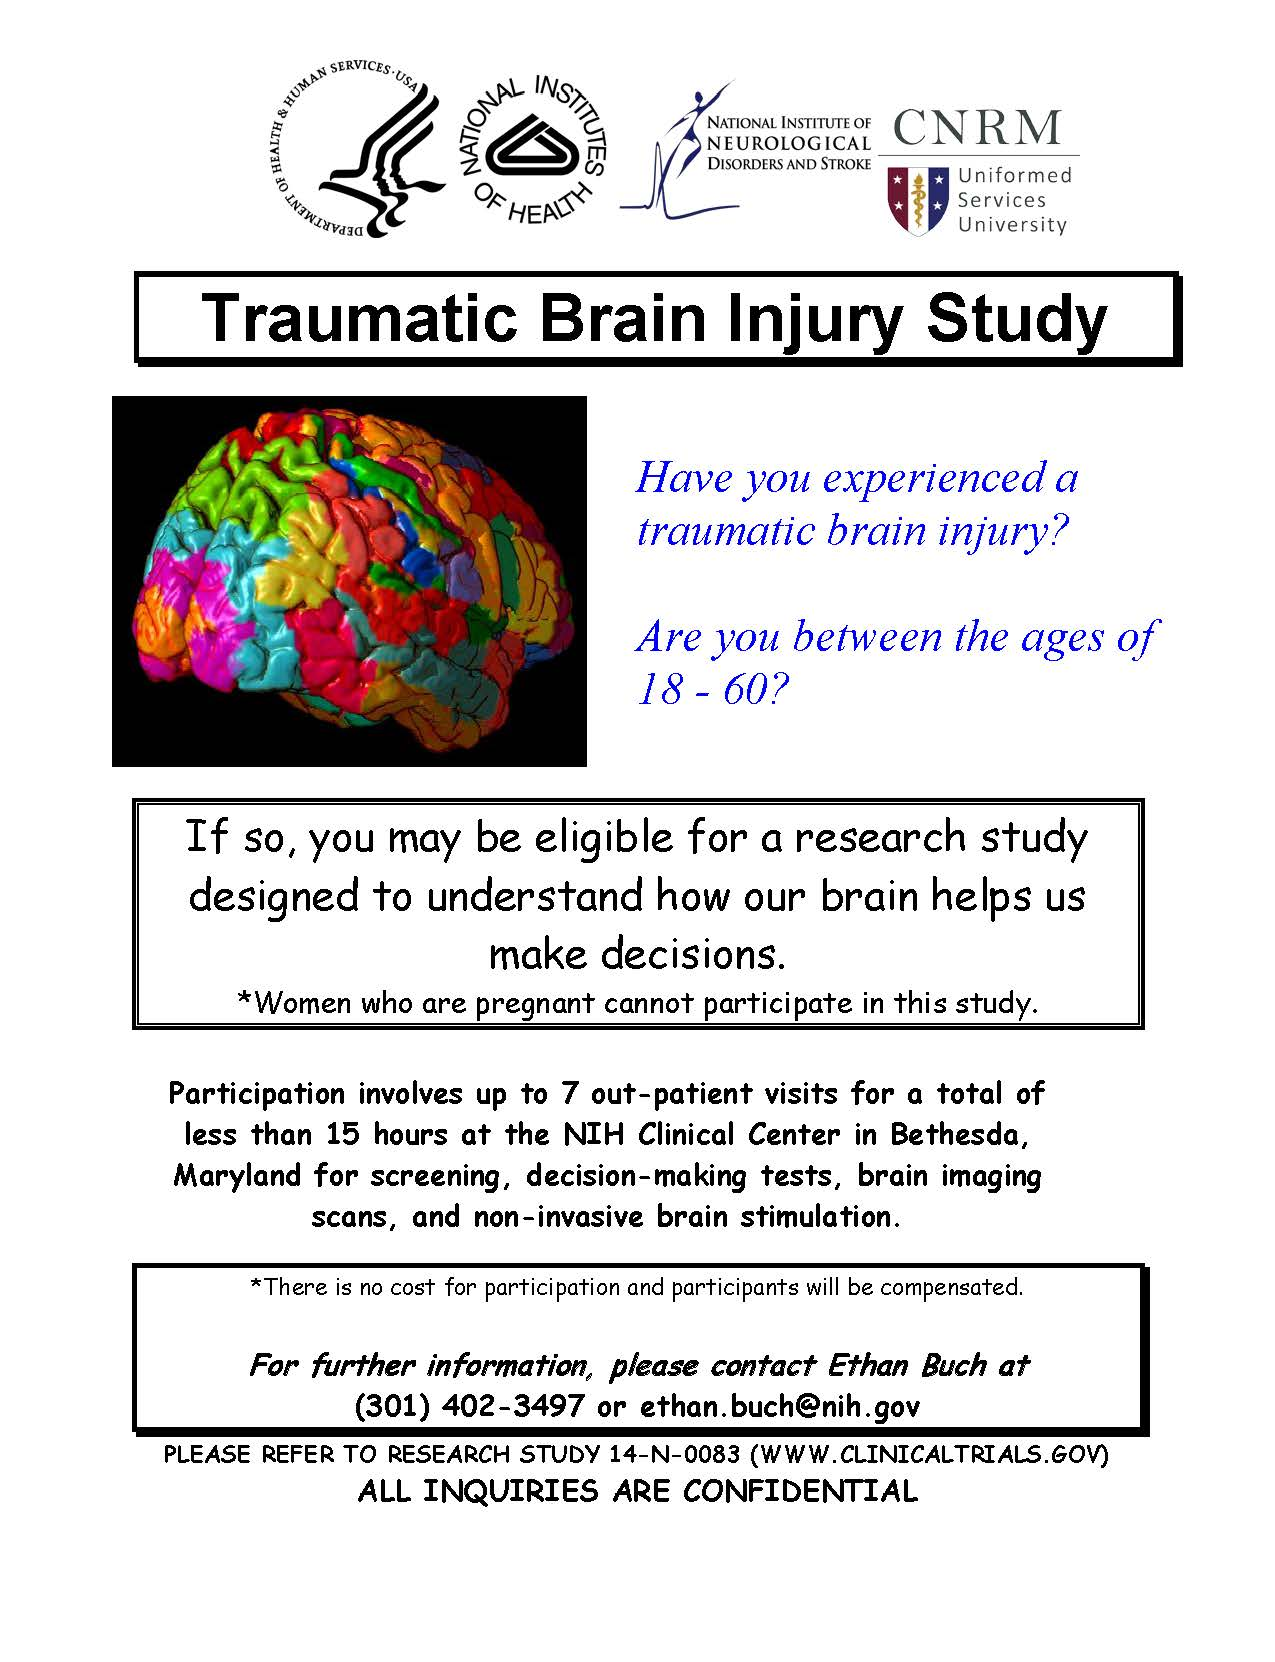 Neural Basis of Decision-Making Deficits in Traumatic Brain Injury